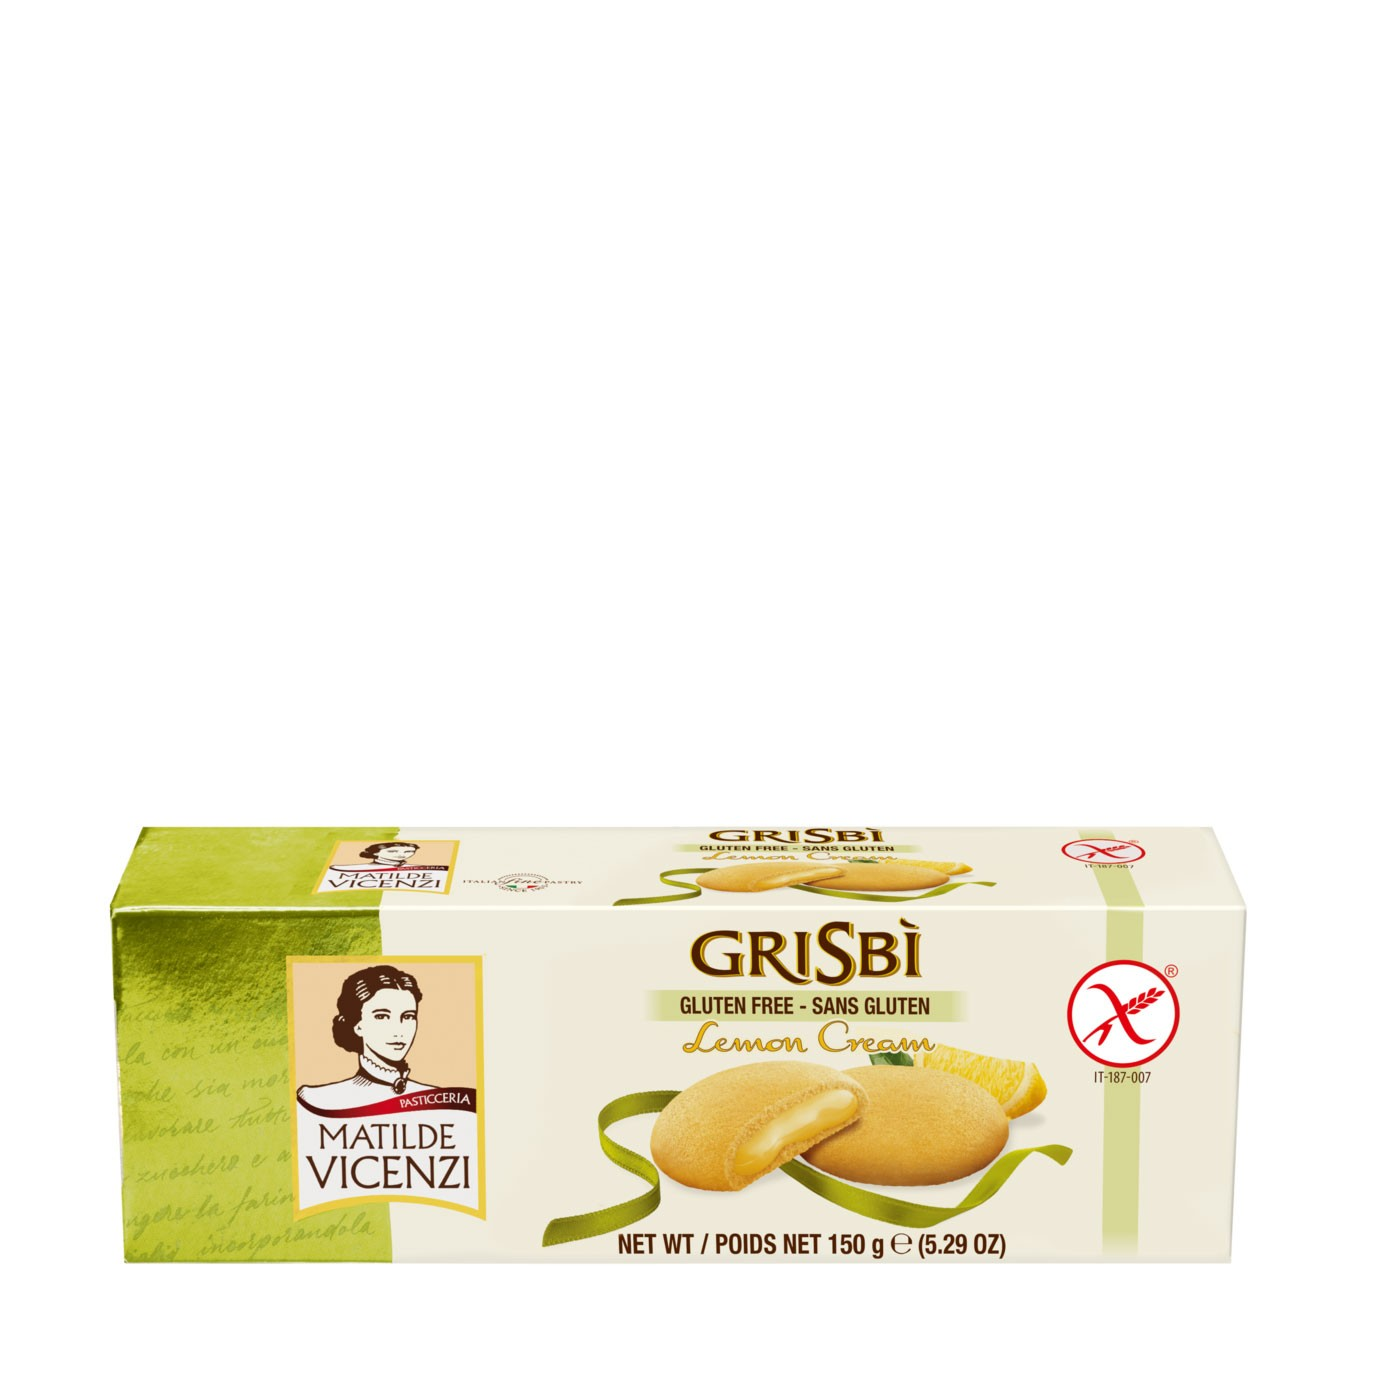 Grisbì Gluten-Free Lemon Cream-Filled Cookies 5.29 oz